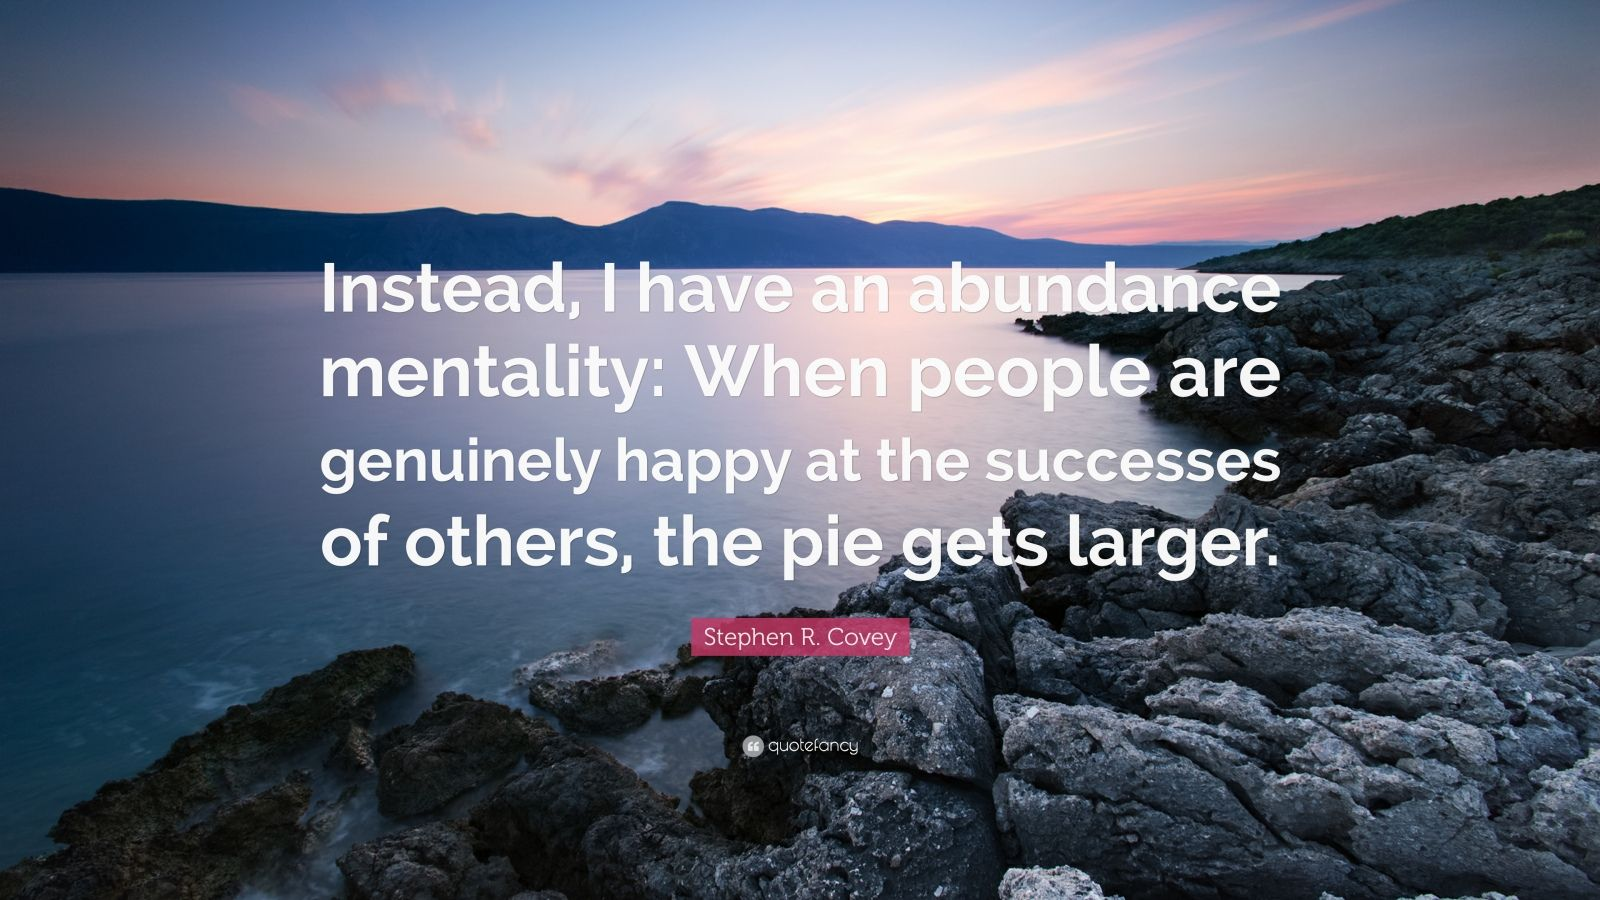 """Stephen R. Covey Quote: """"Instead, I have an abundance mentality: When people are genuinely happy at the successes of others, the pie gets larger."""""""